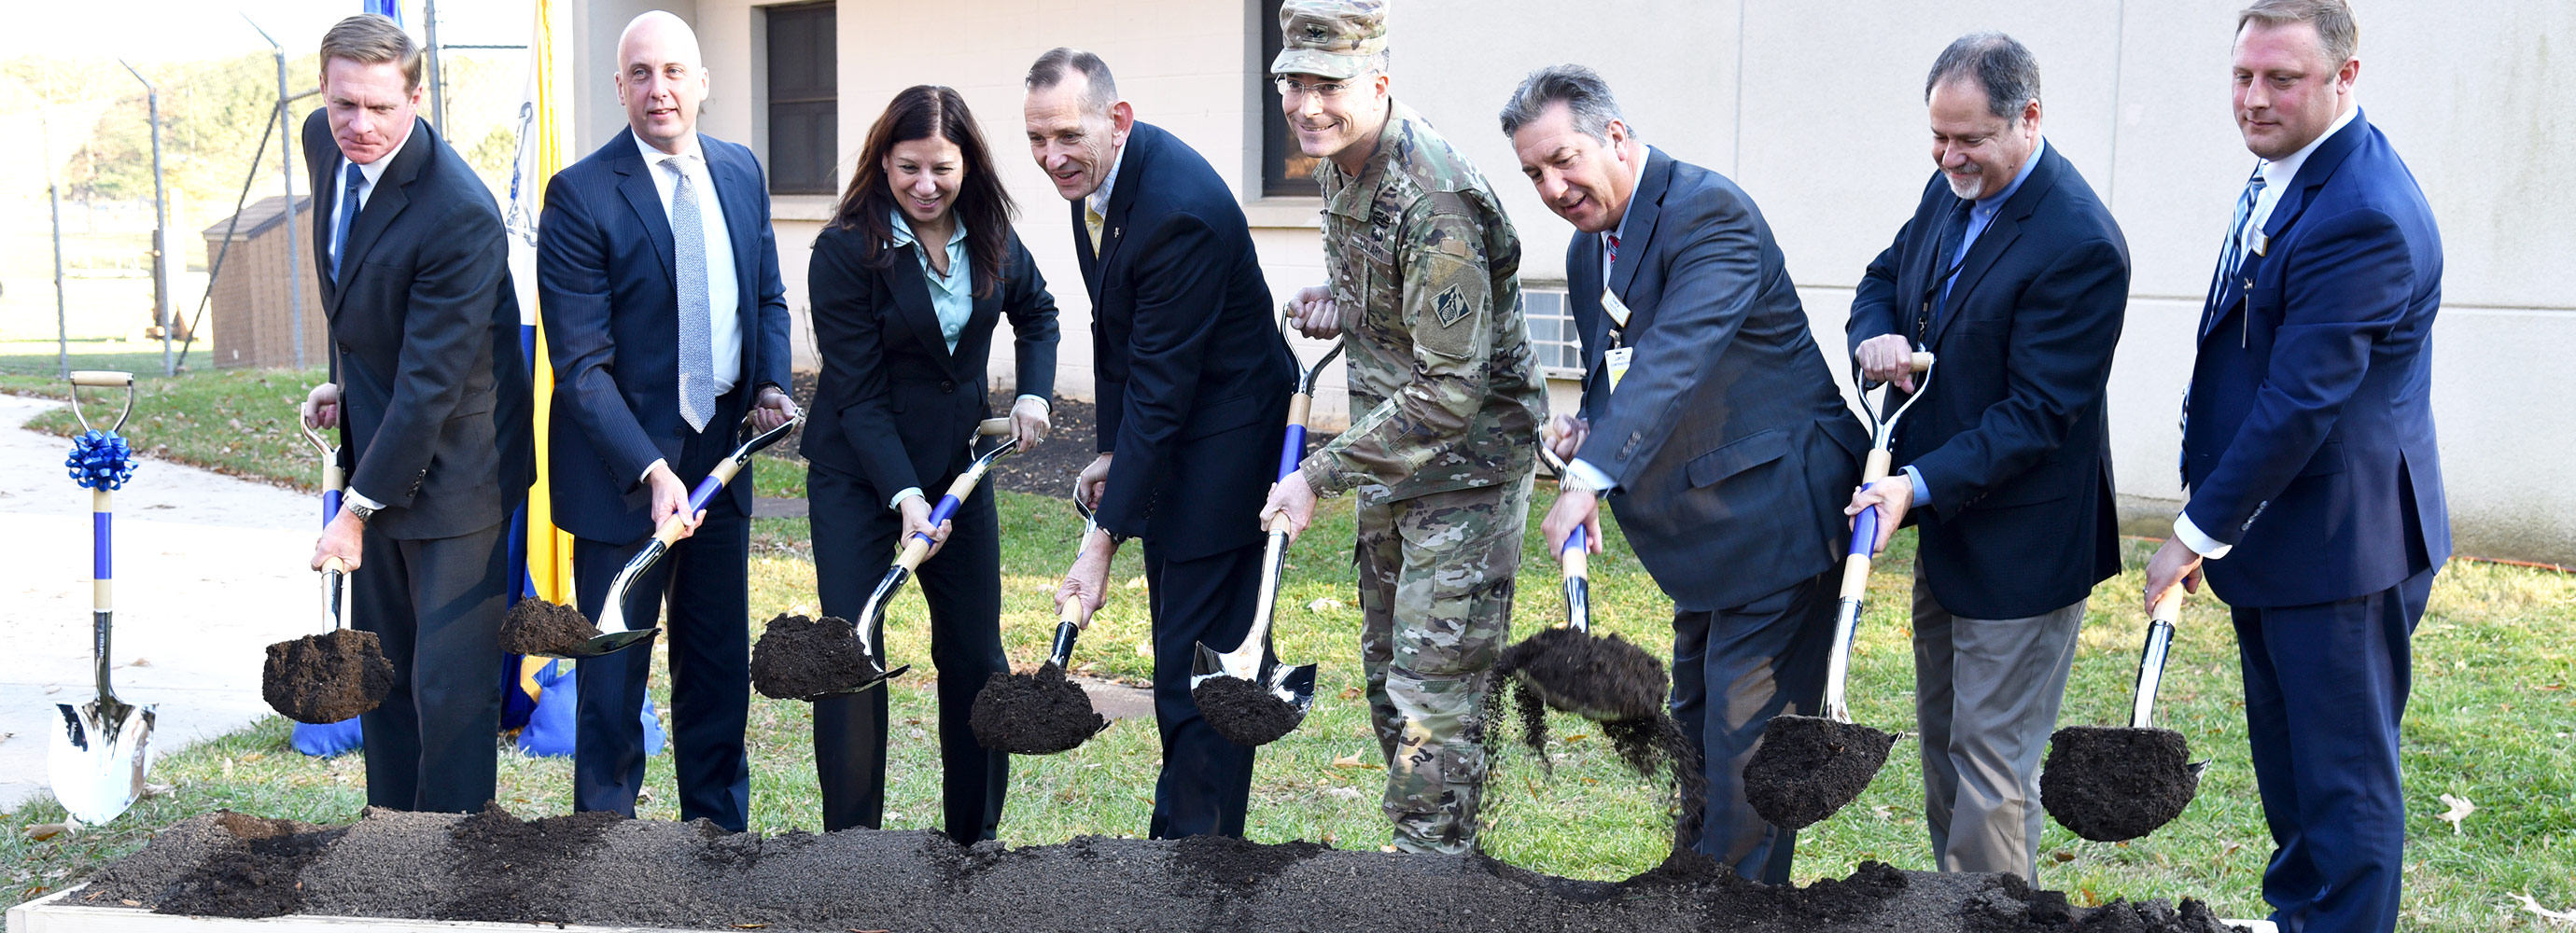 Breaking ground of the new JJRTC Canine Training Facility